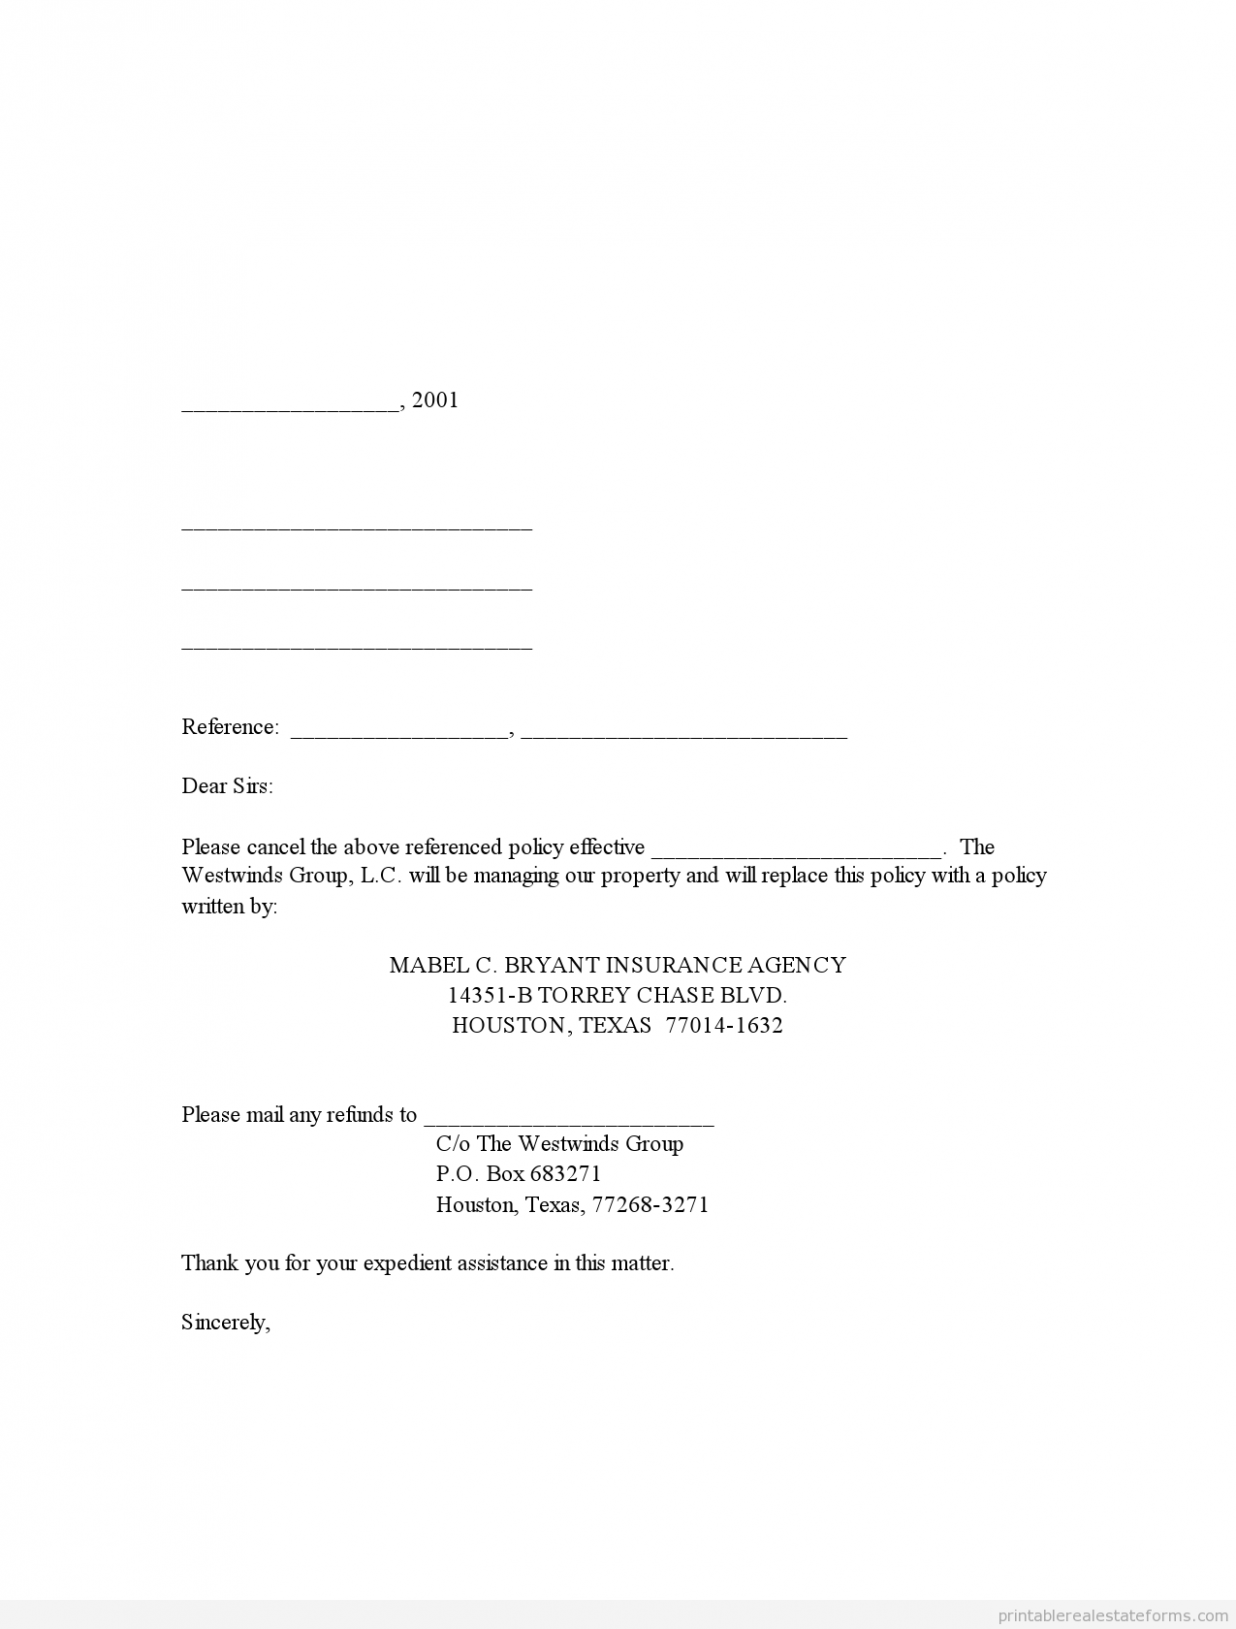 letter template to cancel insurance policy  PDF-Printable Cancellation of Existing Hazard Insurance - letter template to cancel insurance policy